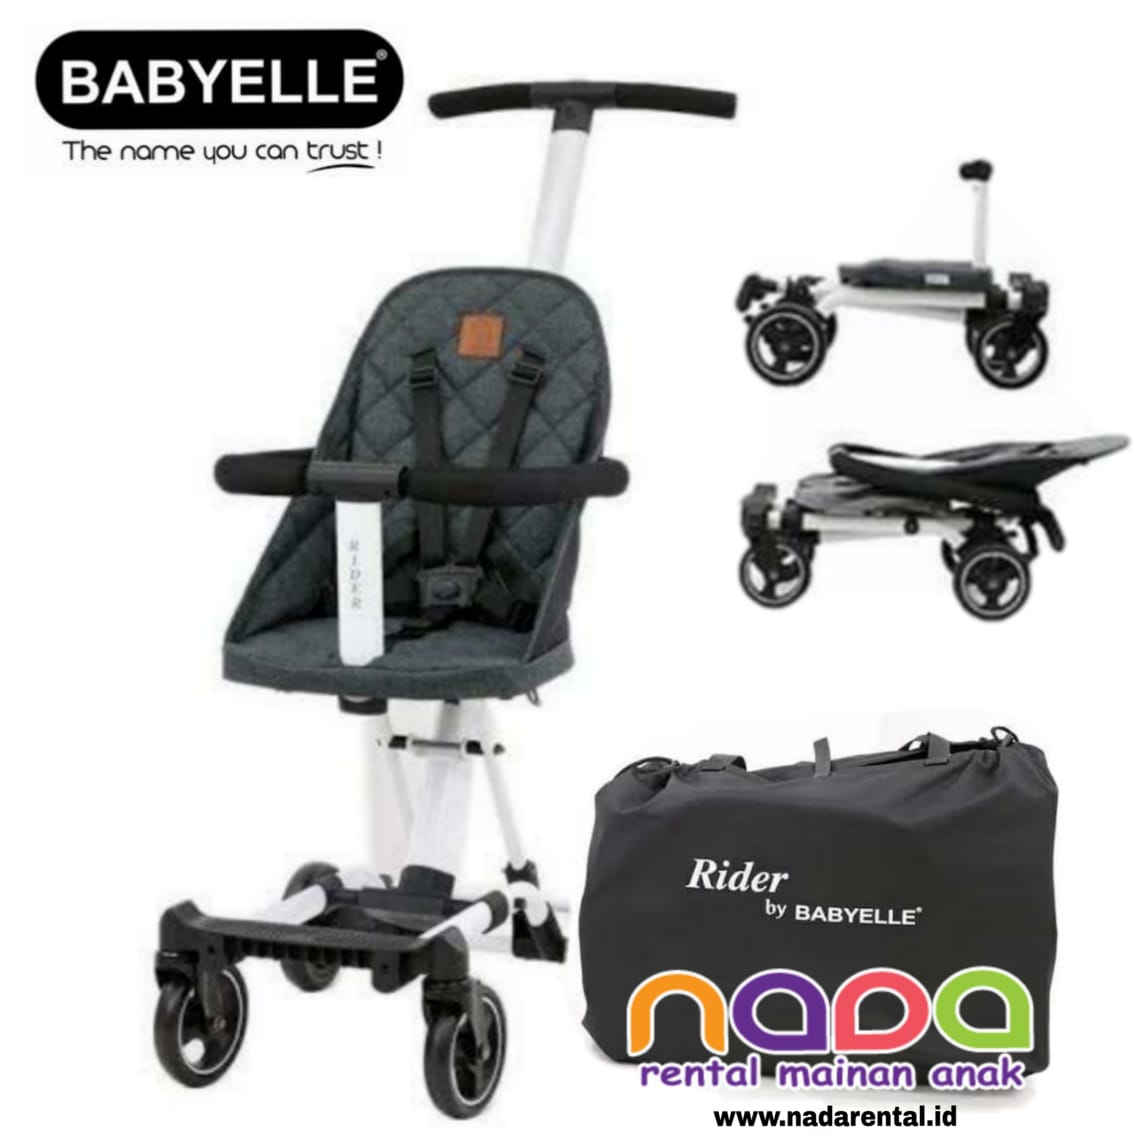 BABY ELLE RIDER DARK GREY